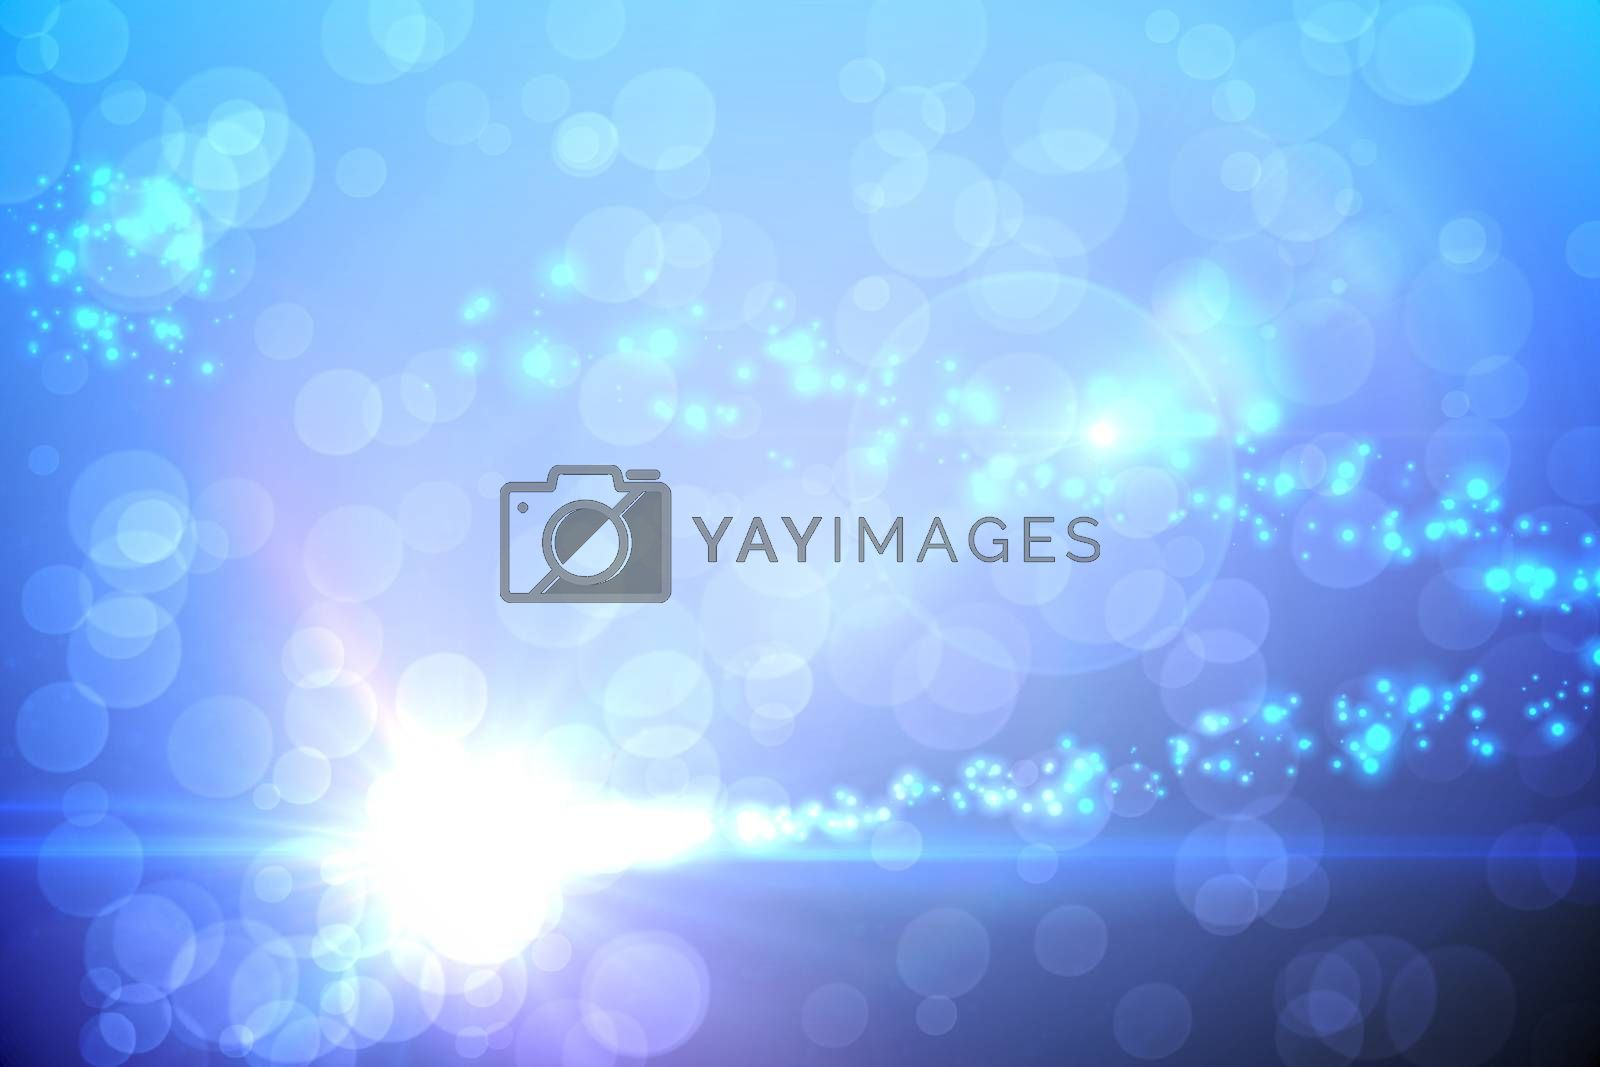 Royalty free image of Bright light energy design in blue by Wavebreakmedia